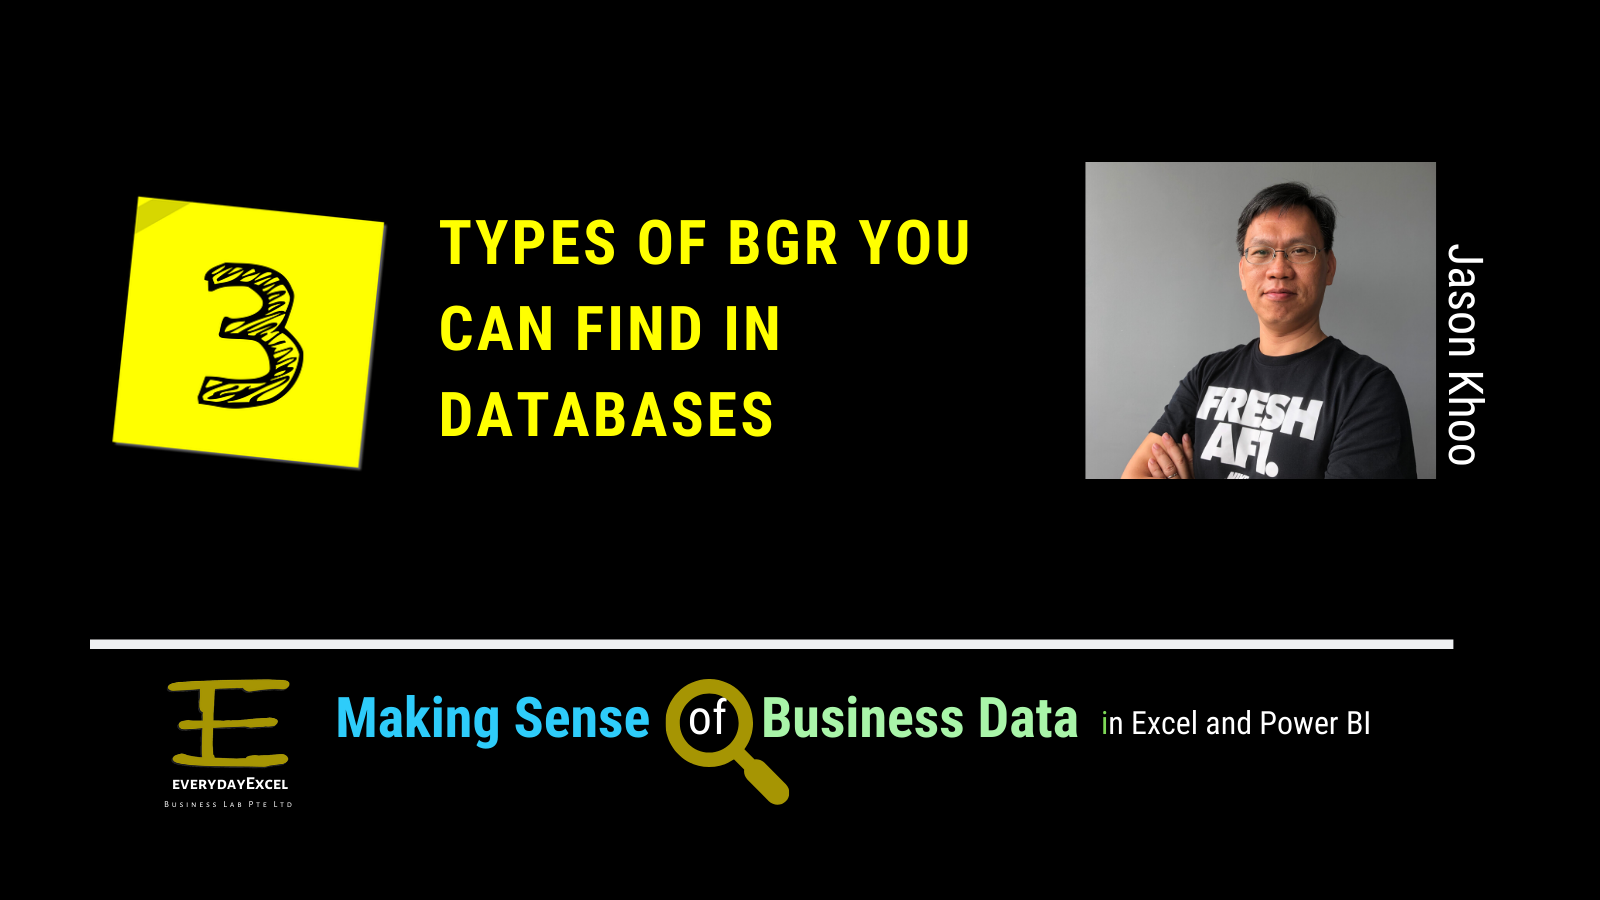 3-types-of-bgr-you-can-find-in-databases